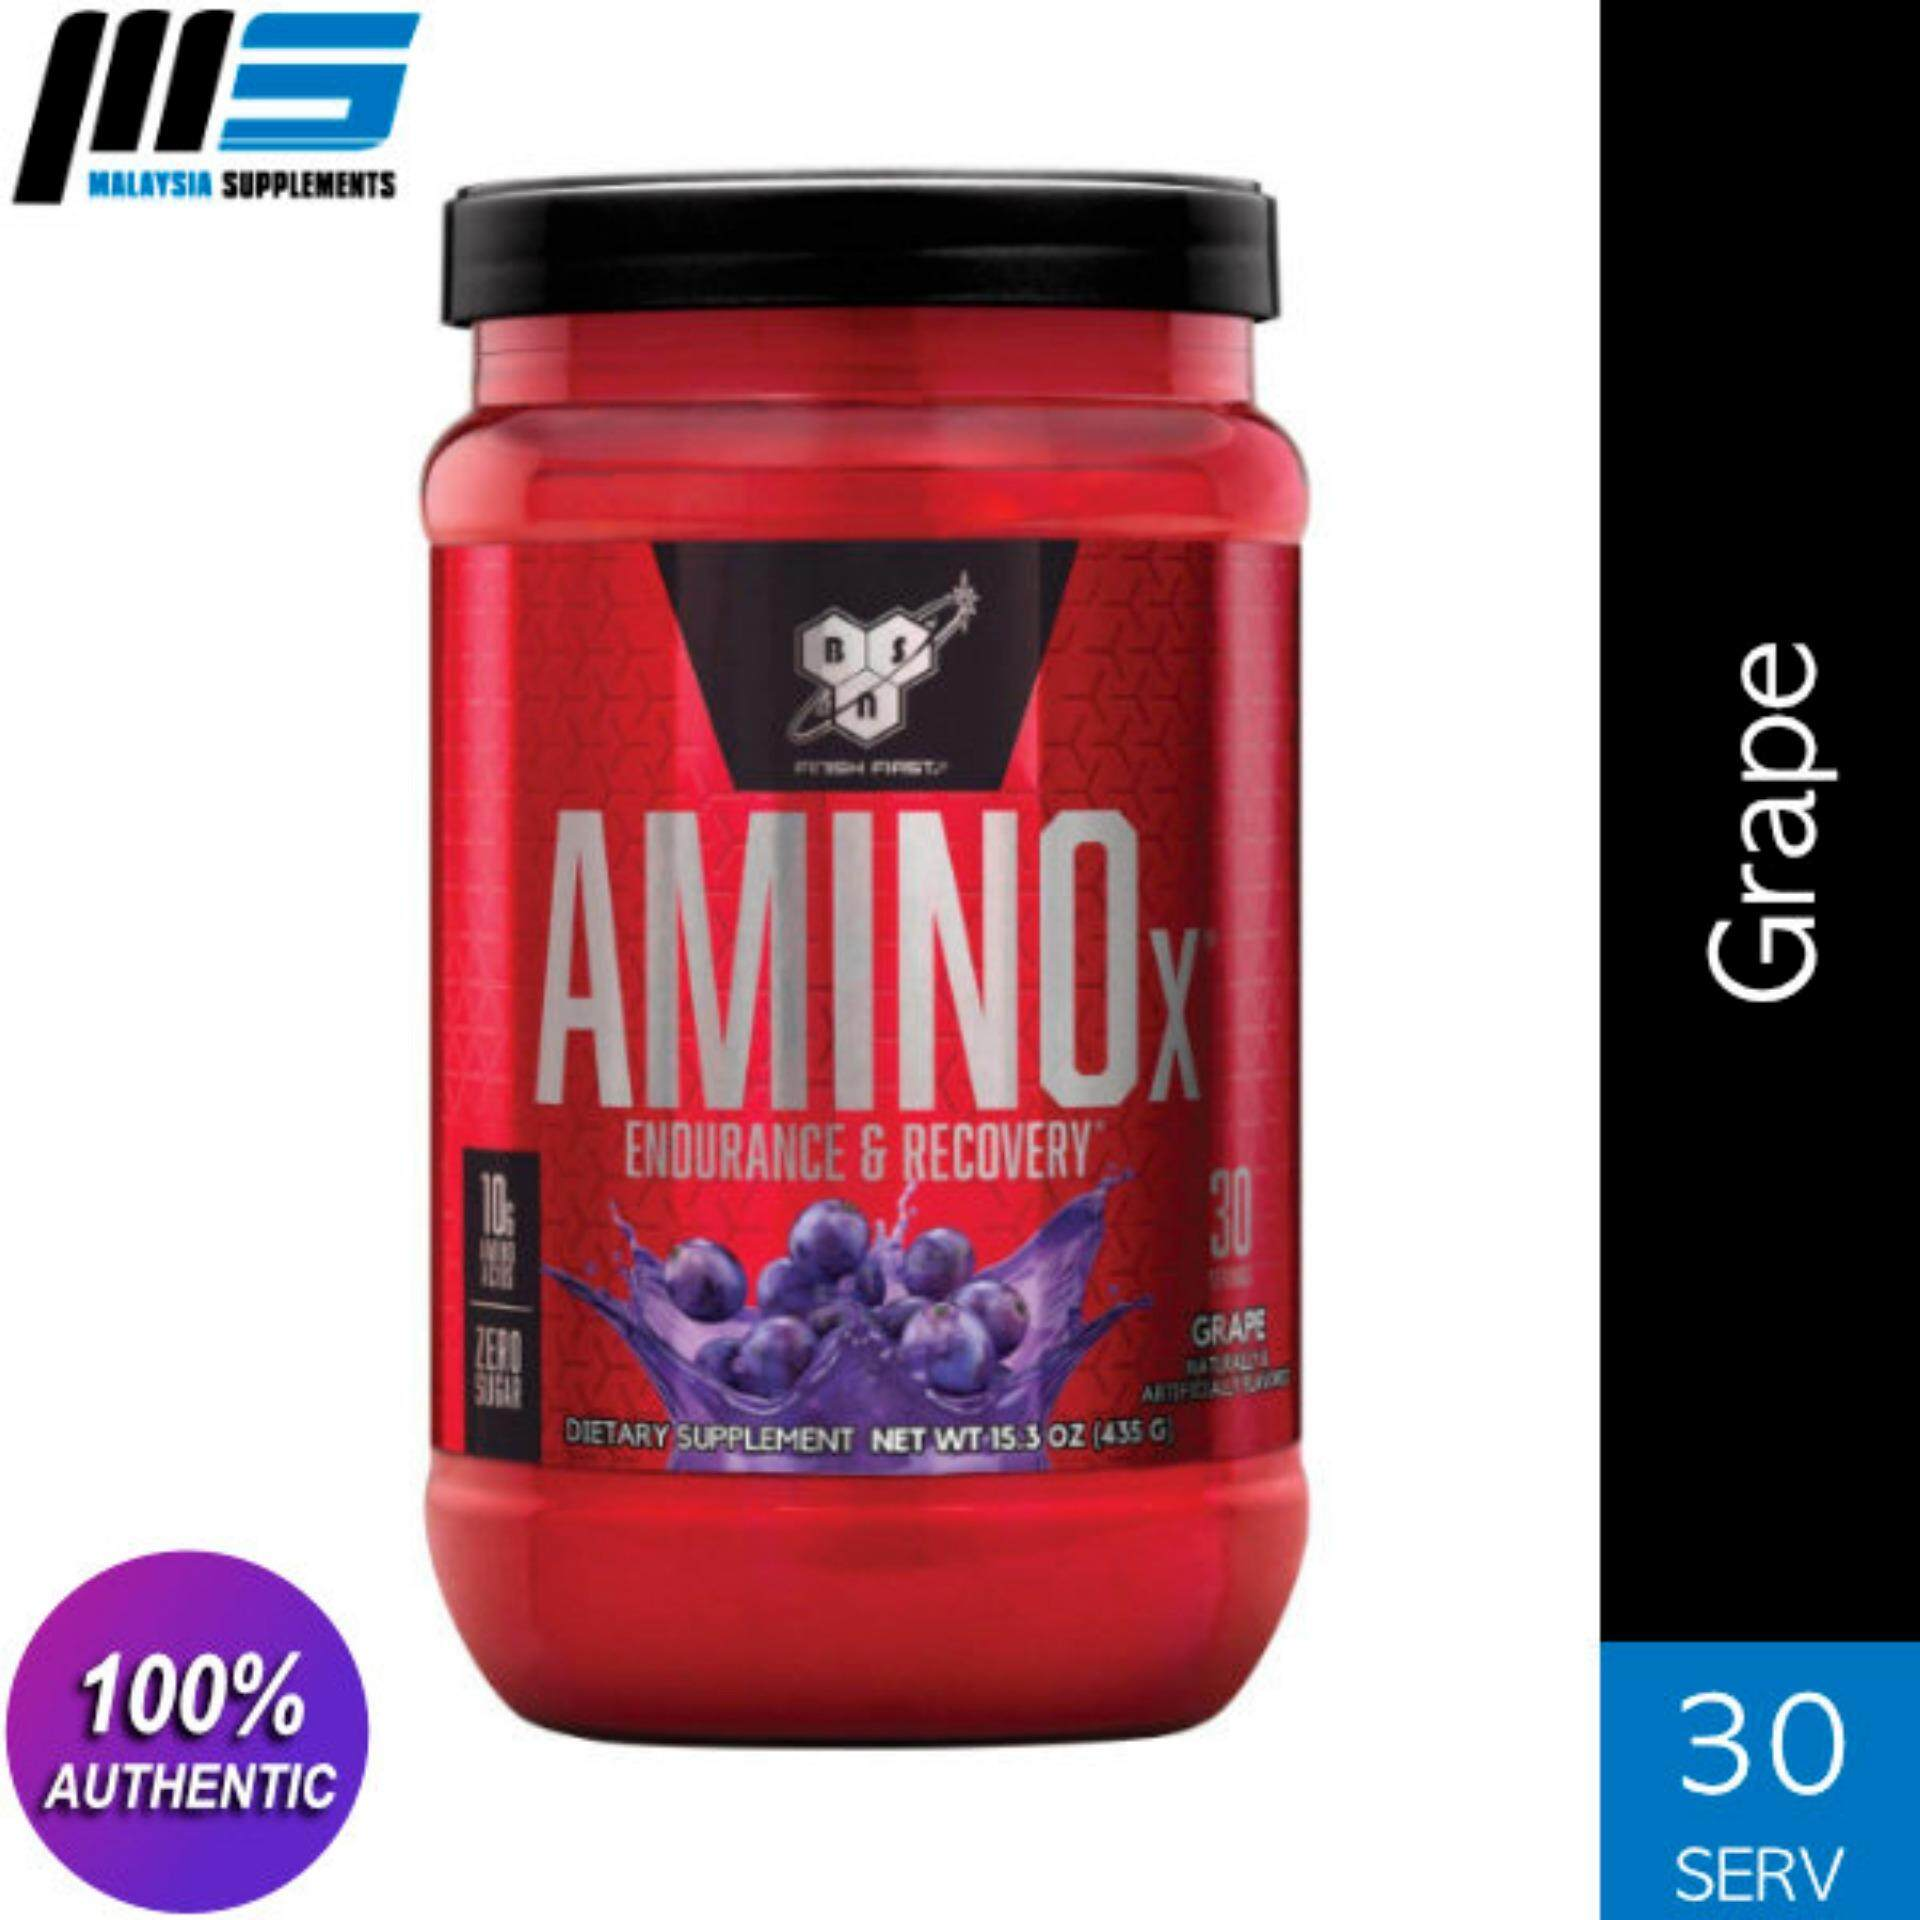 Bsn Amino X, Grape, 30 Servings By Malaysia Supplements.